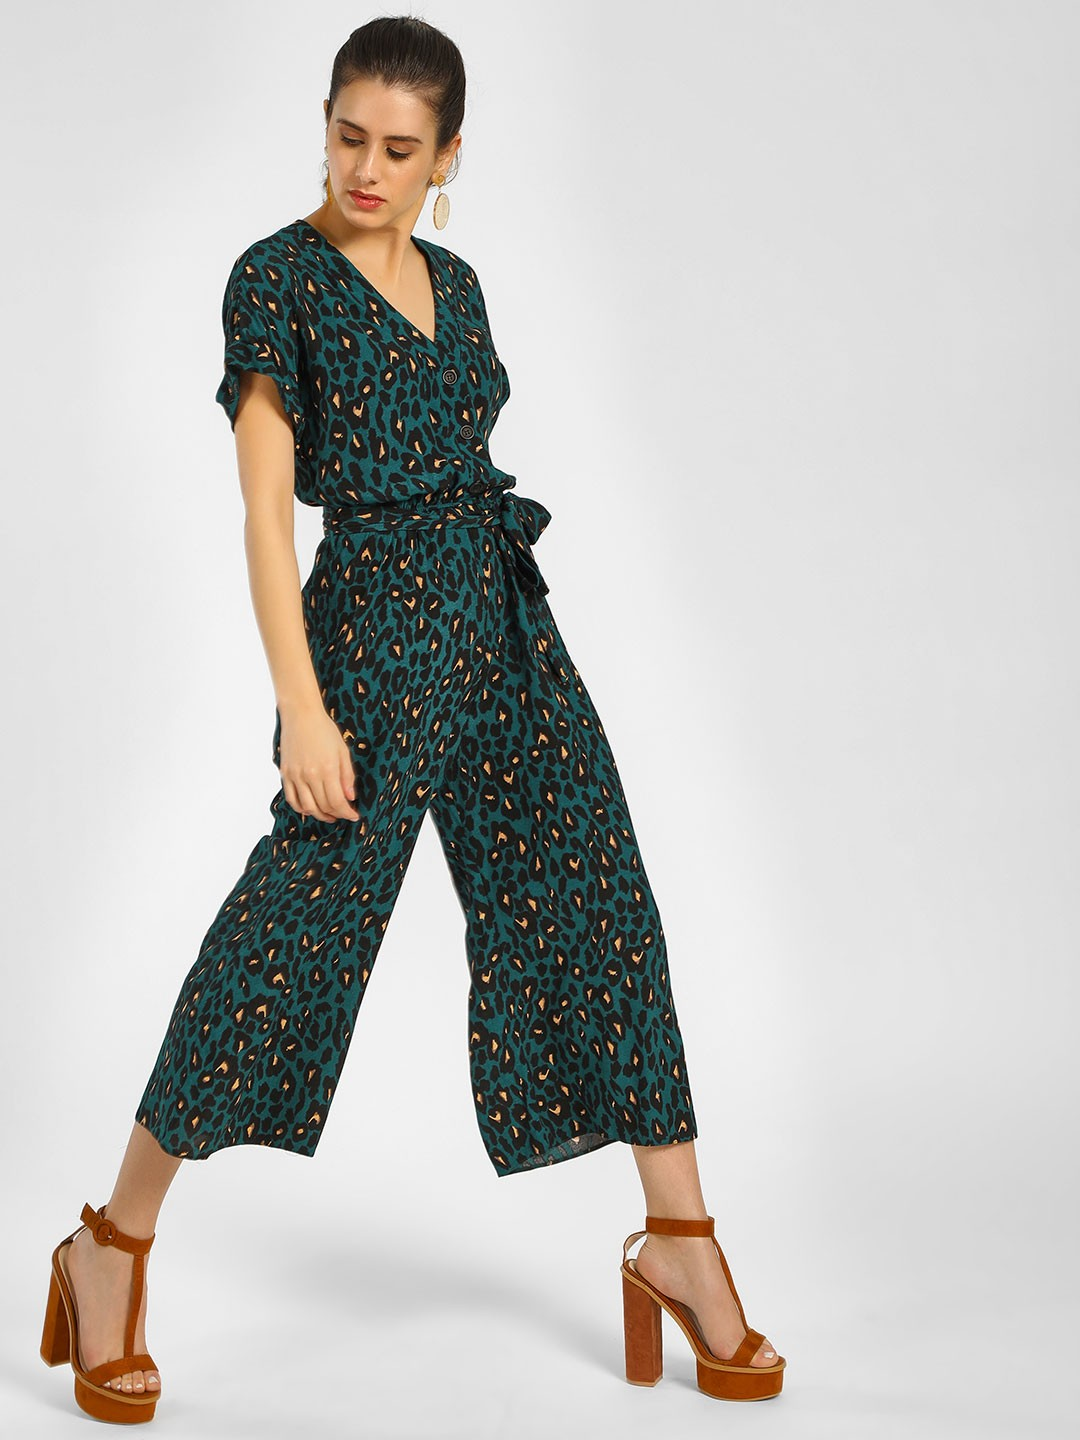 New Look Green Leopard Print Tie-Up Jumpsuit 1